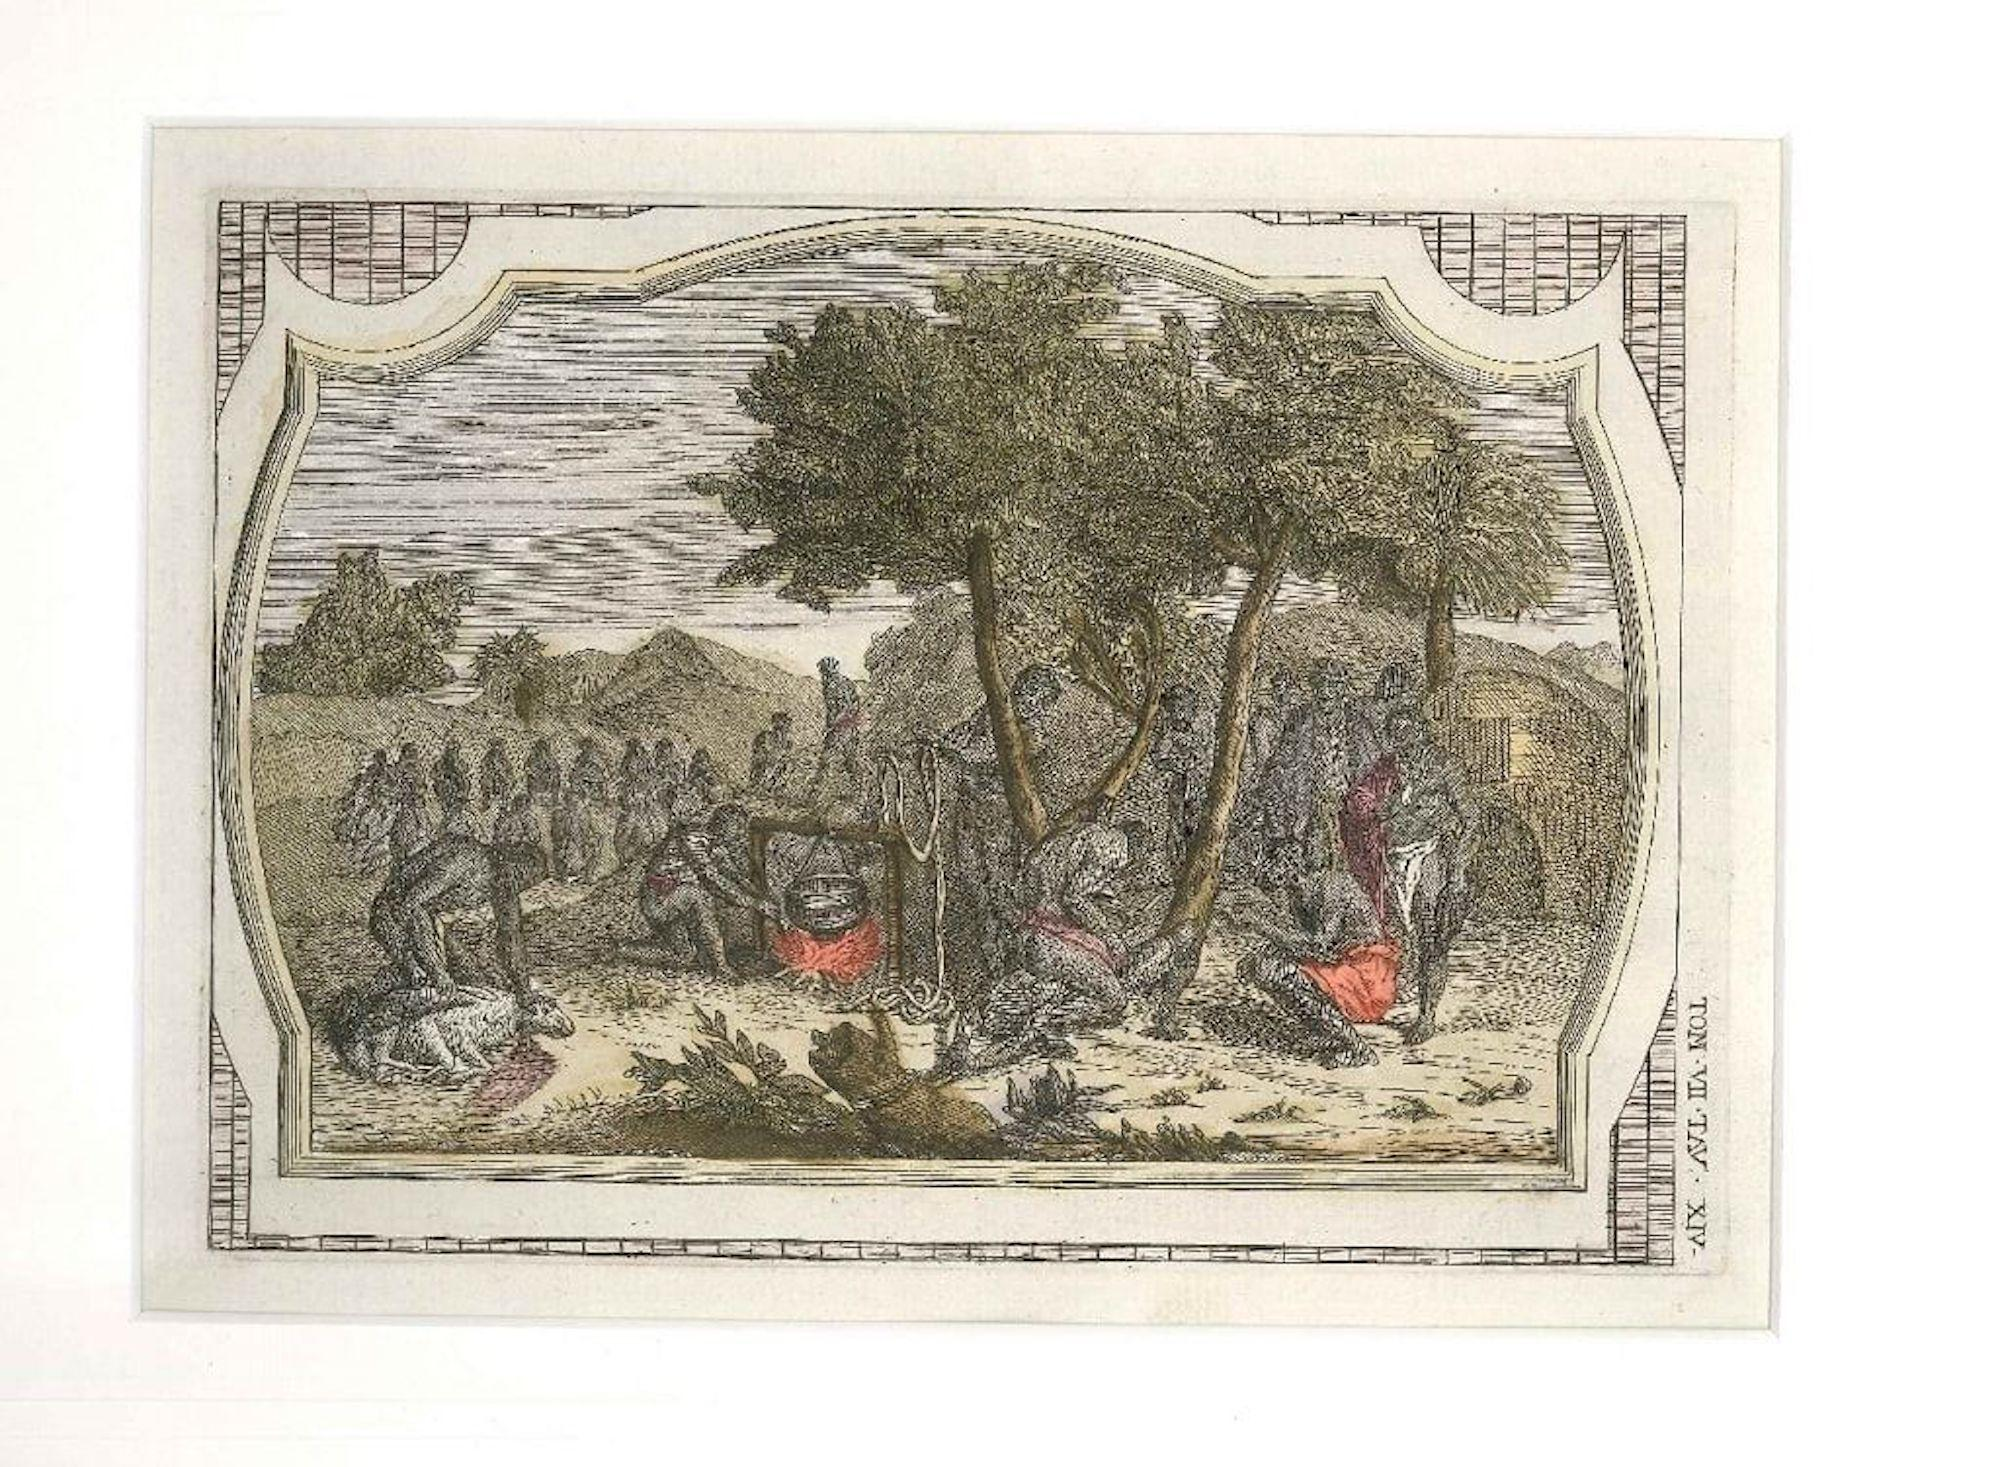 Sacrifices Among the Natives - Original Color Etching by G. Pivati - 1746-1751